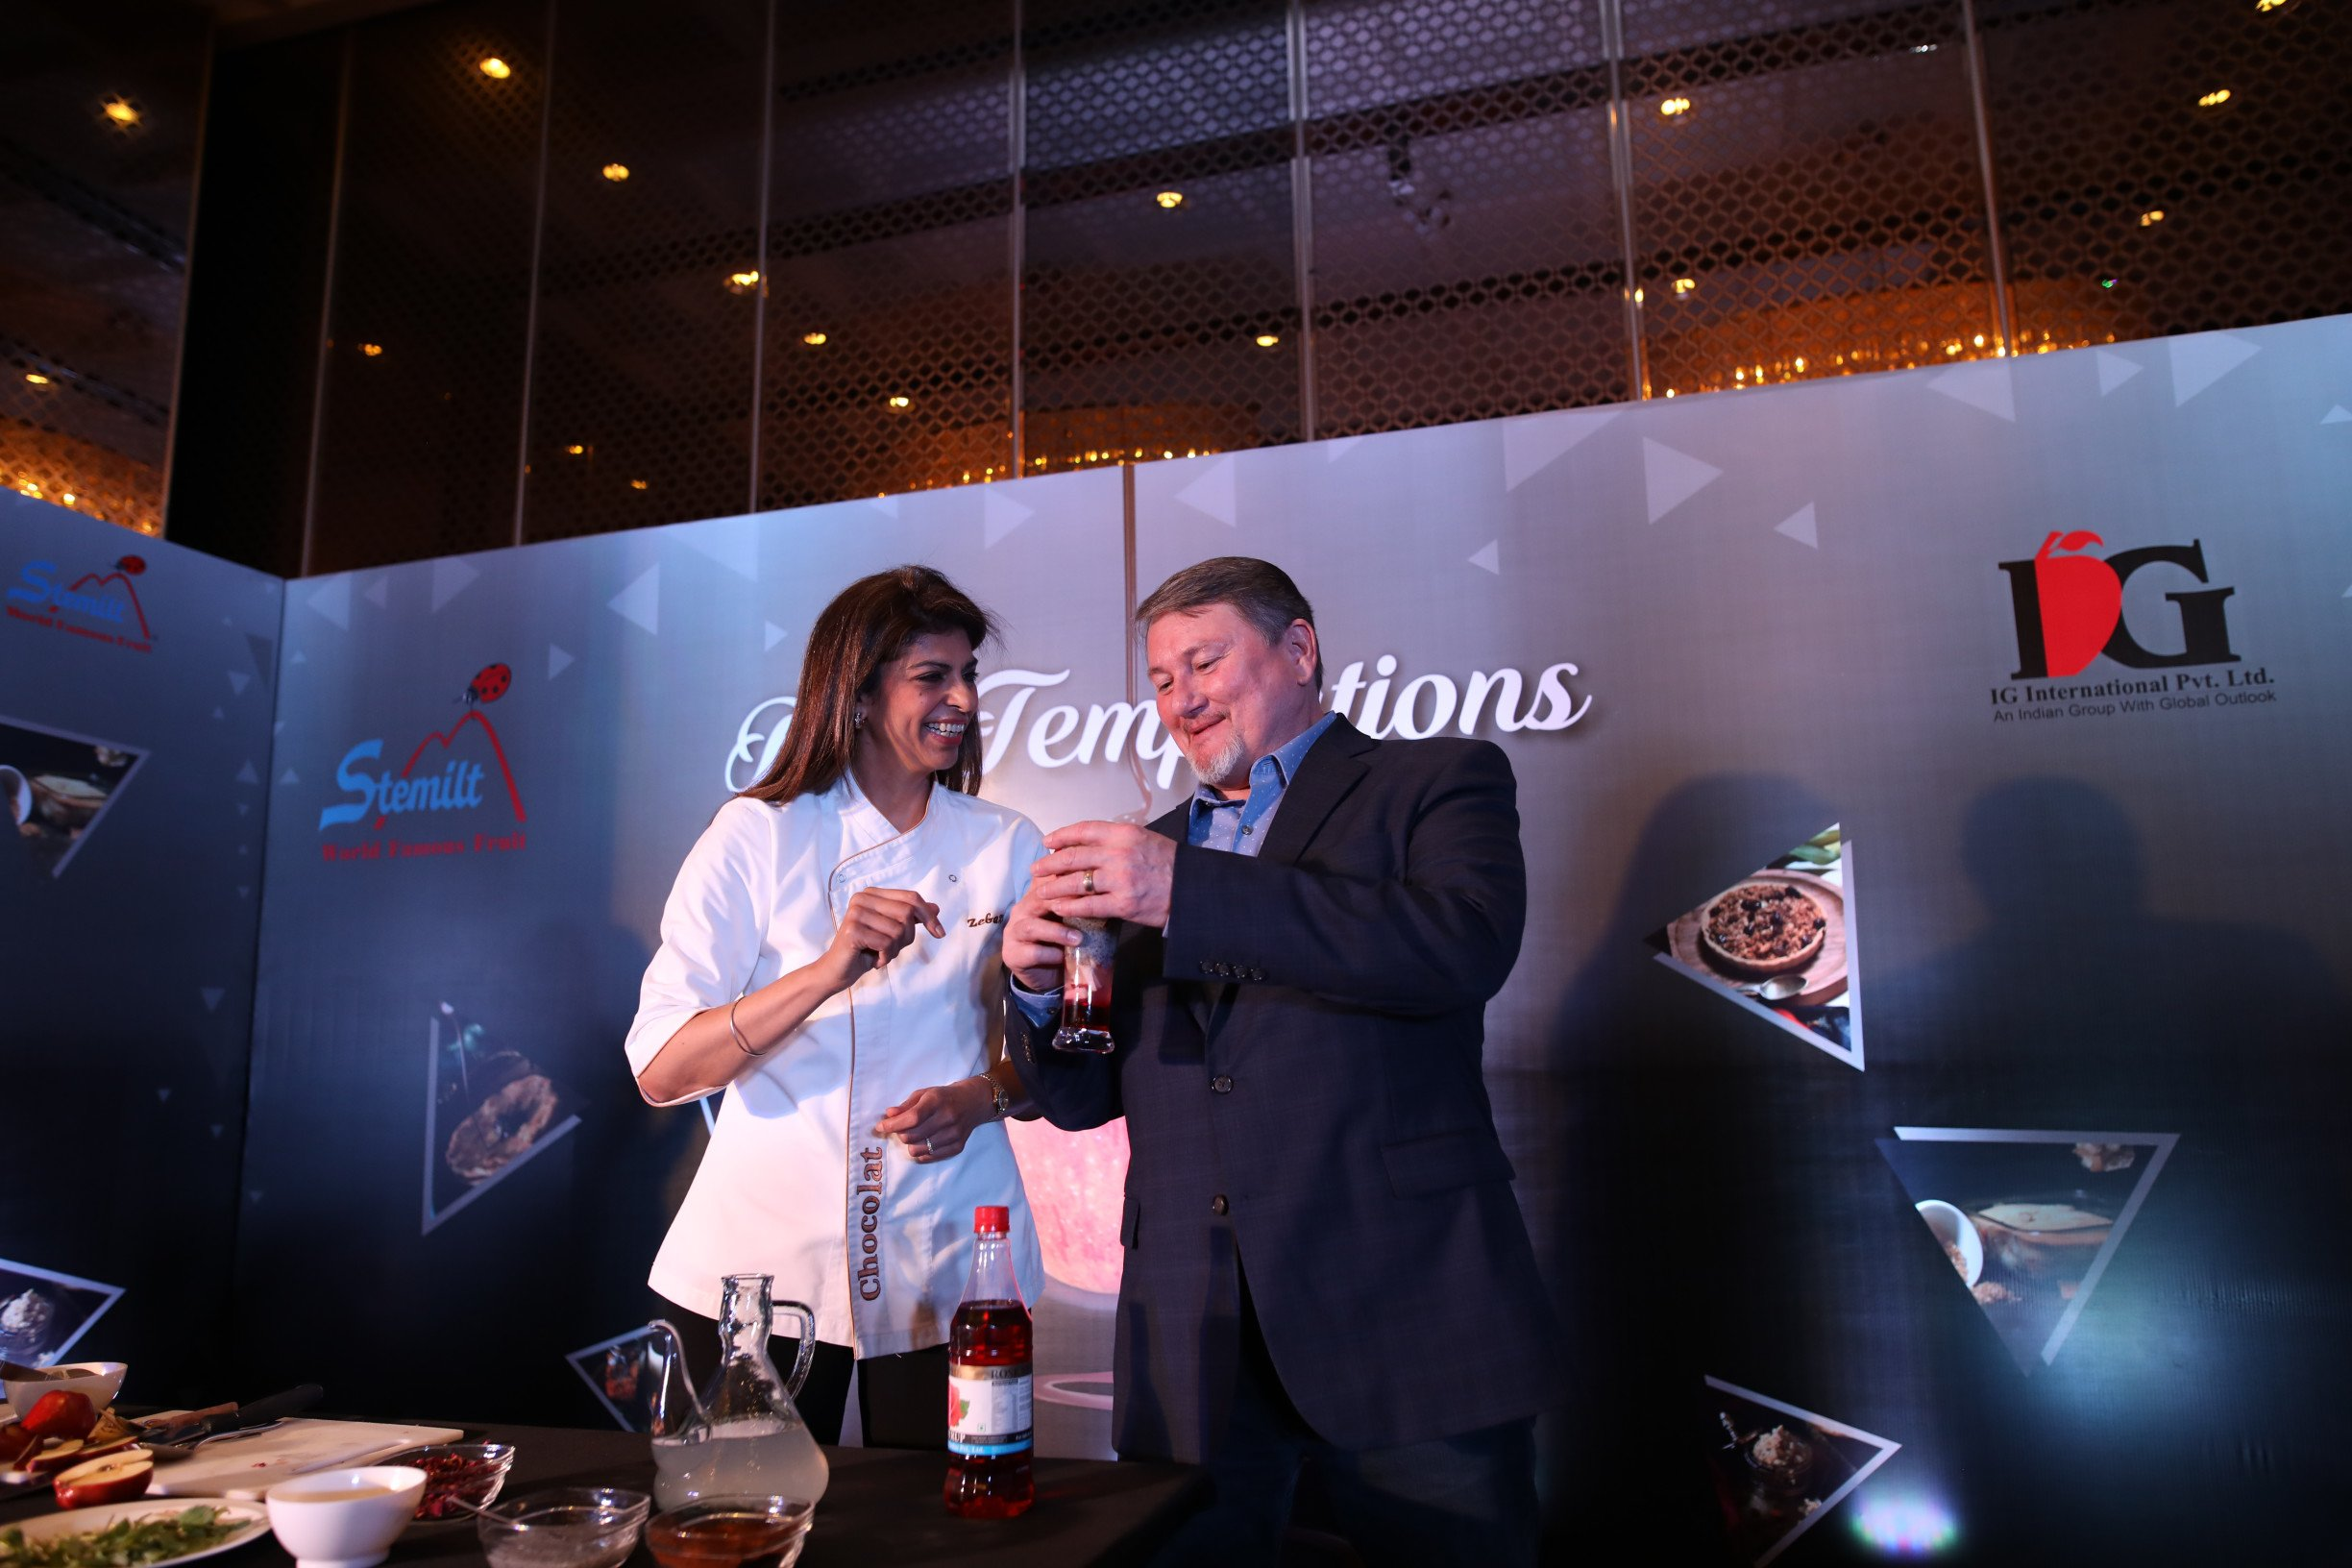 When Apples Meet Chocolate: IG International launches 'Applelicious' by Chocolatier Zeba Kohli in association with Stemilt Growers